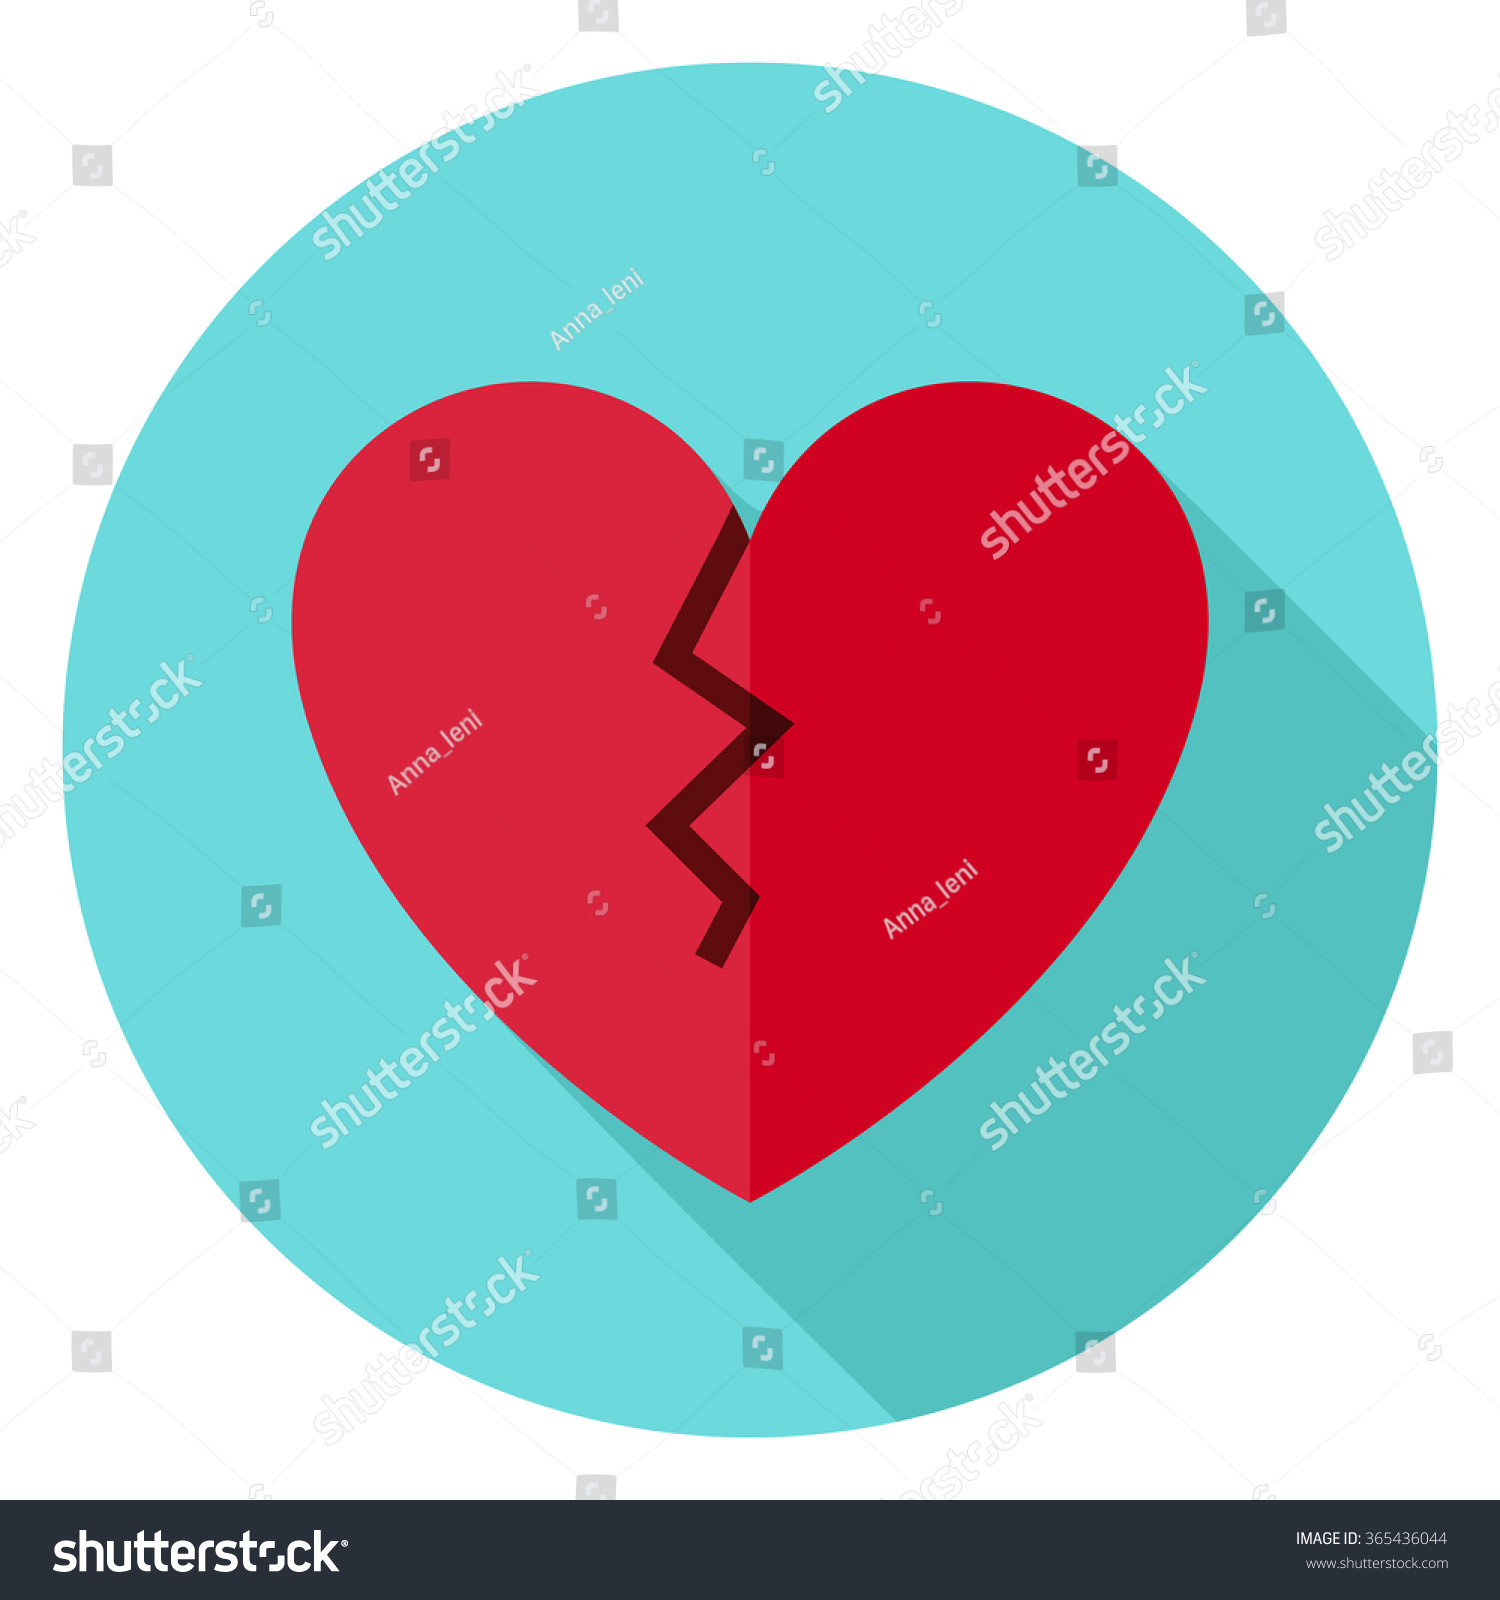 Broken Heart Circle Icon Flat Design Vector Illustration With Long Shadow Happy Valentine Day